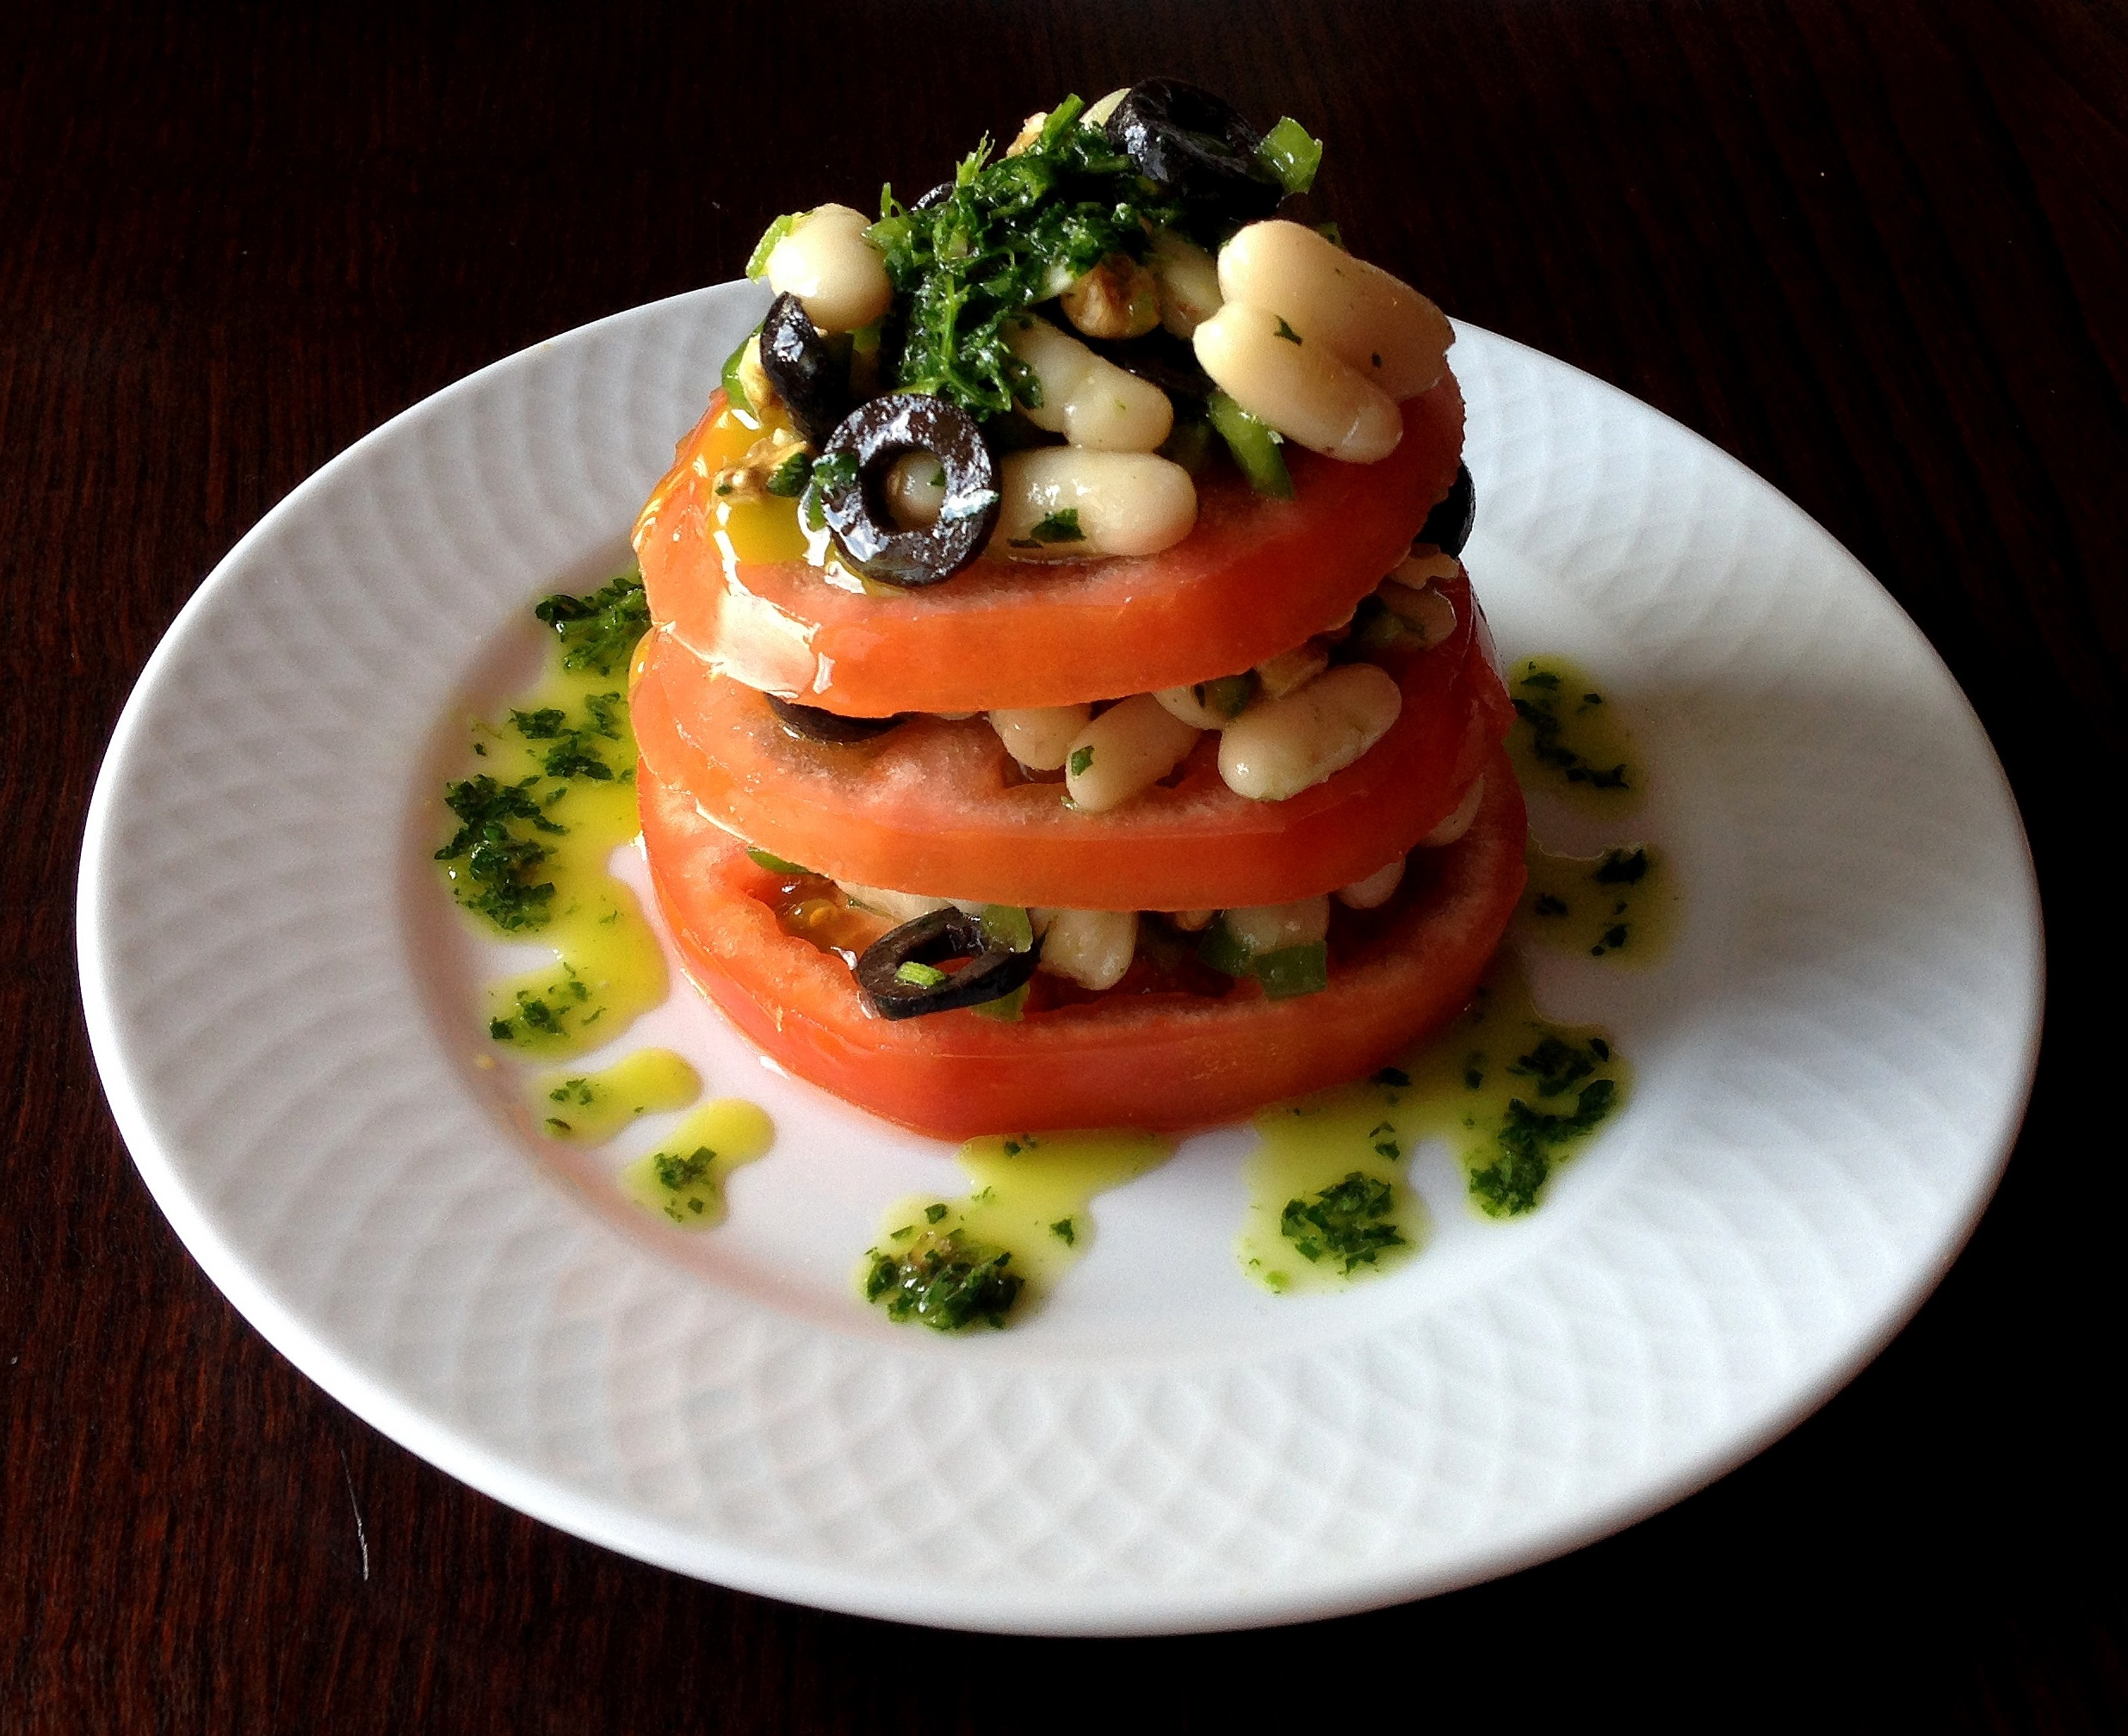 Timbal de tomate y alubias